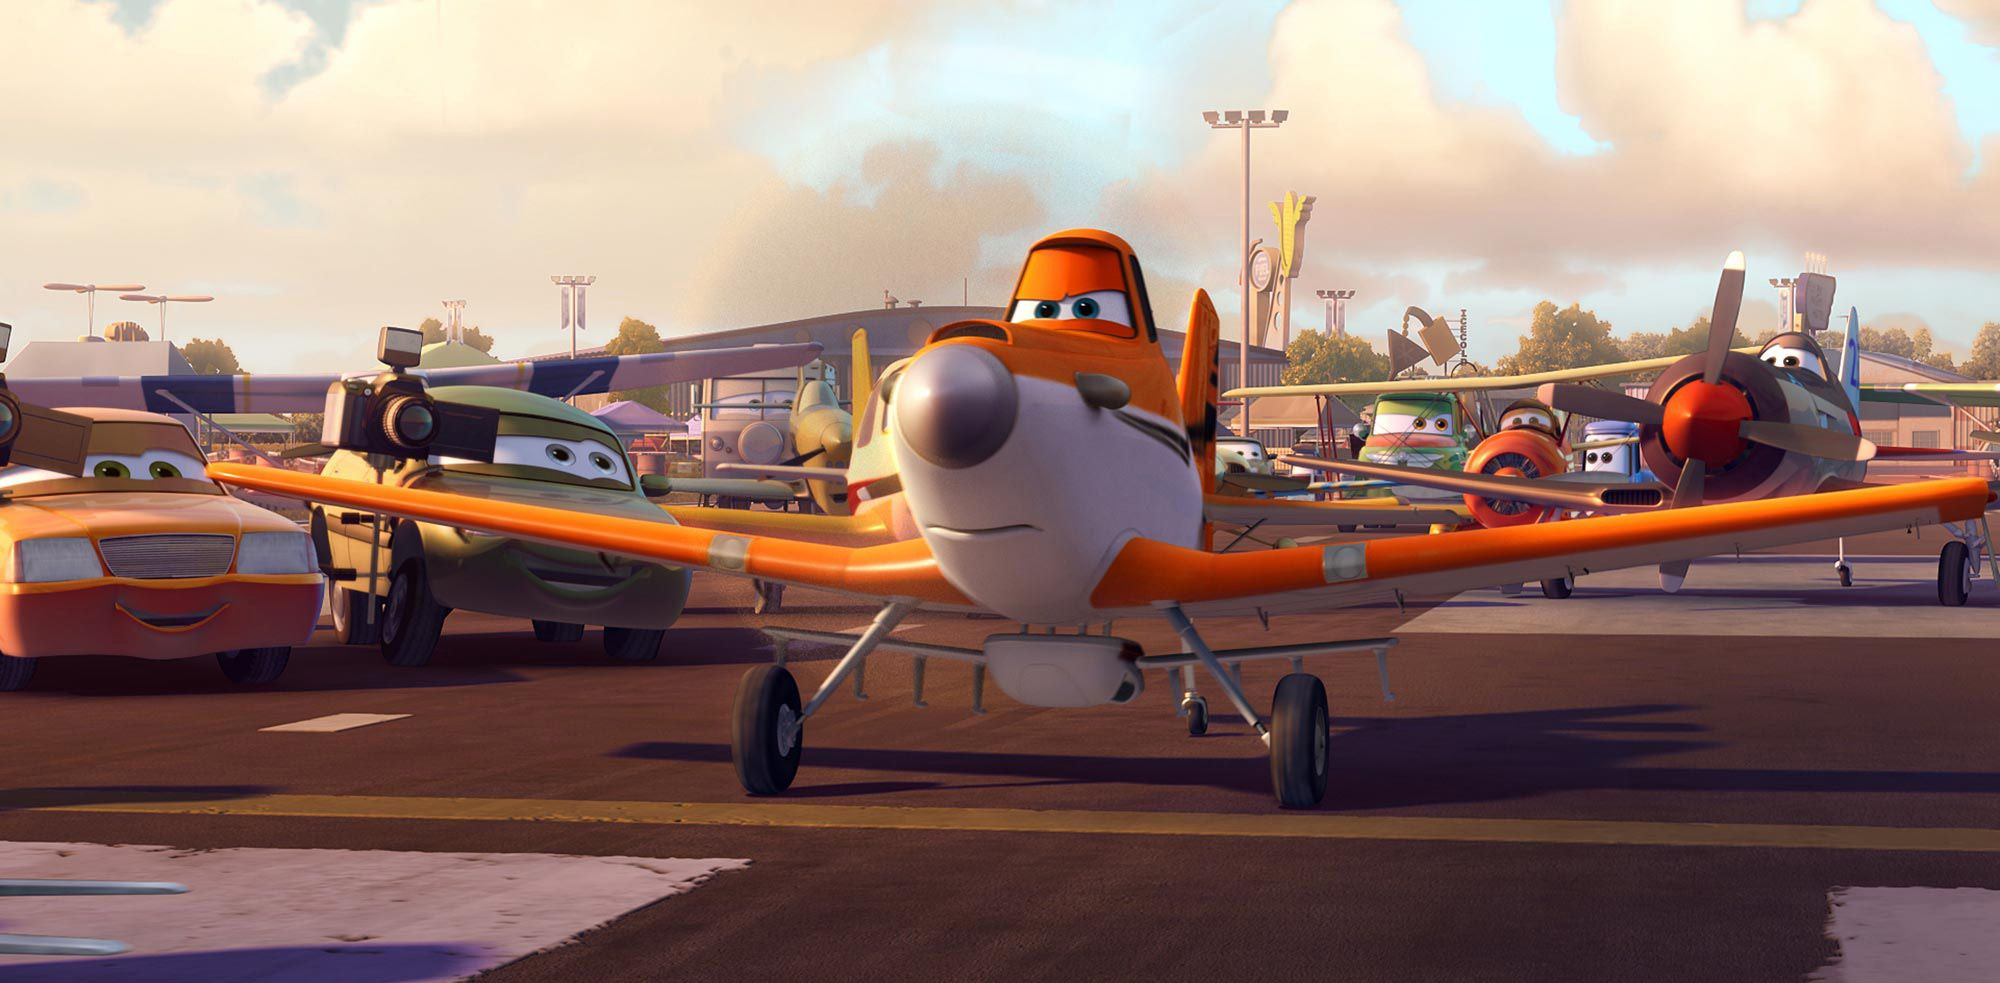 An image from Planes